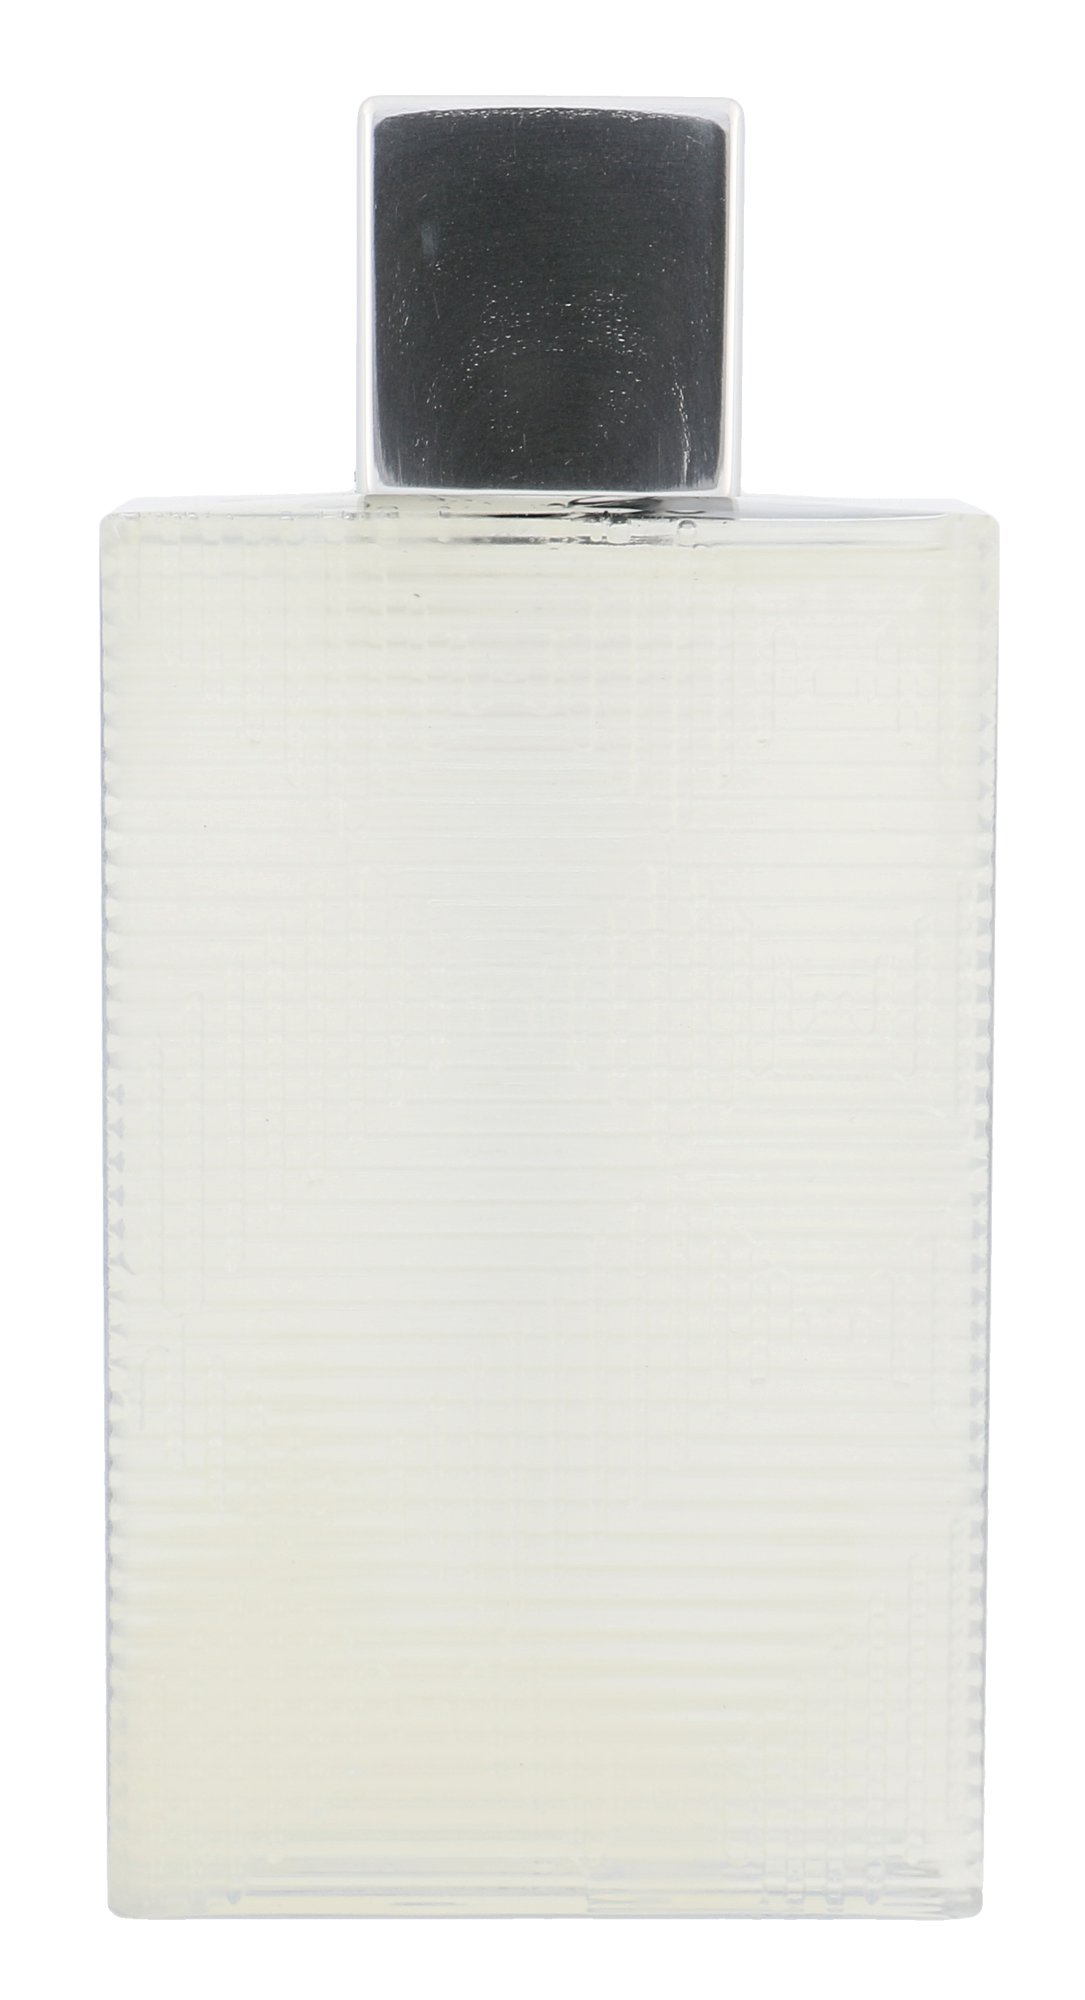 Burberry Brit, Sprchovací gél 150ml - For Him